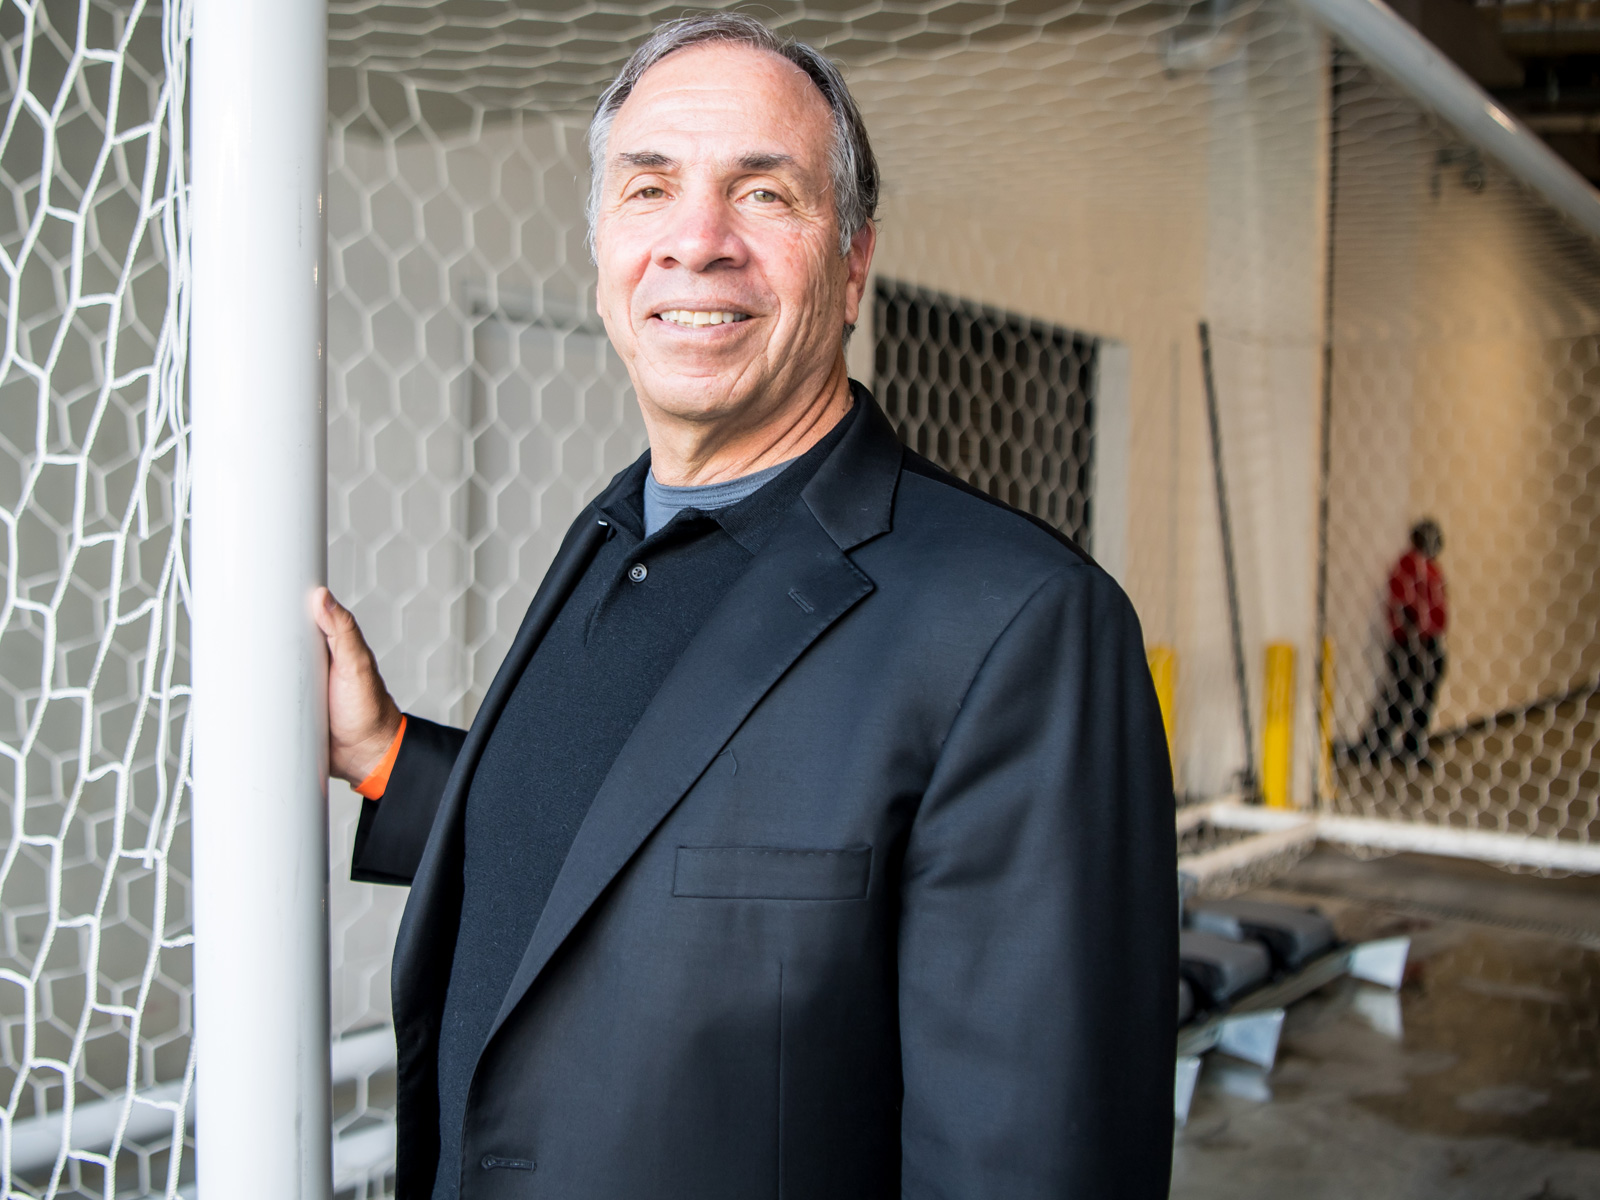 Bruce Arena is the new coach and sporting director of the New England Revolution